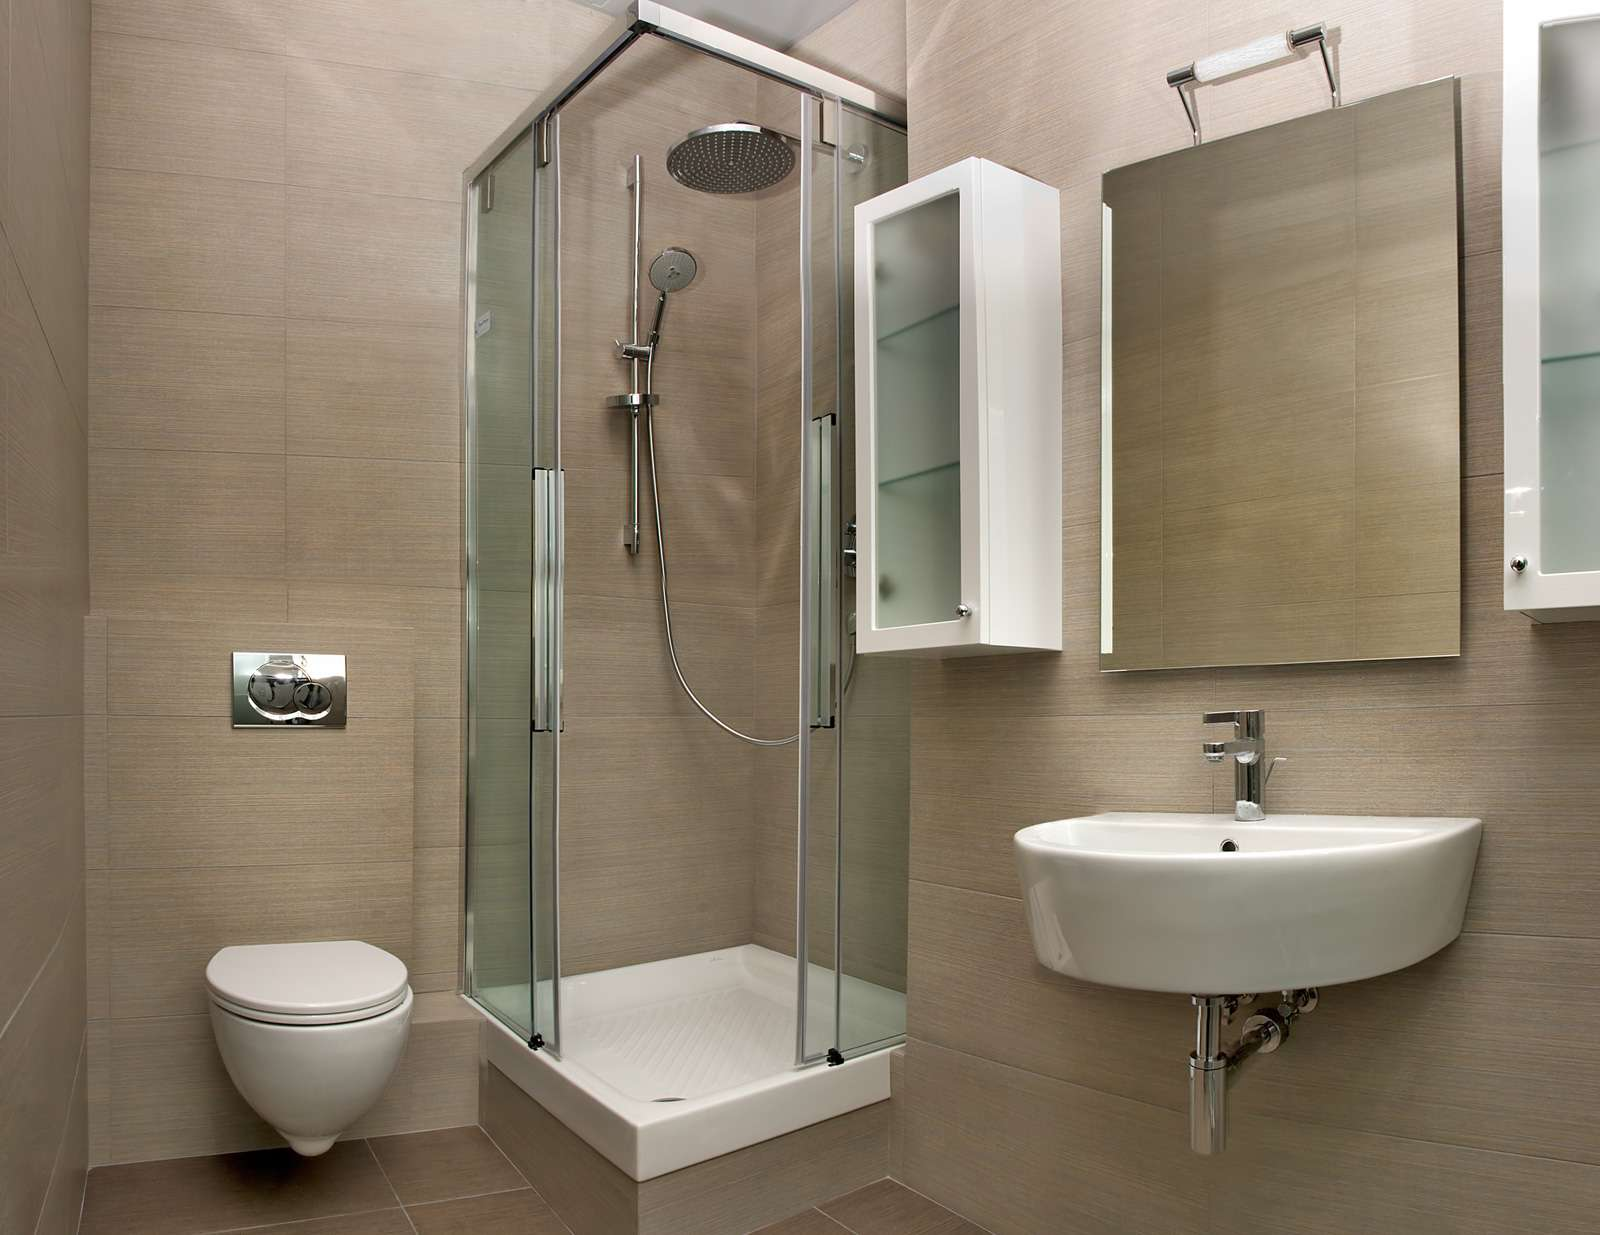 Bath Shower Bathroom Remodel Designs Small